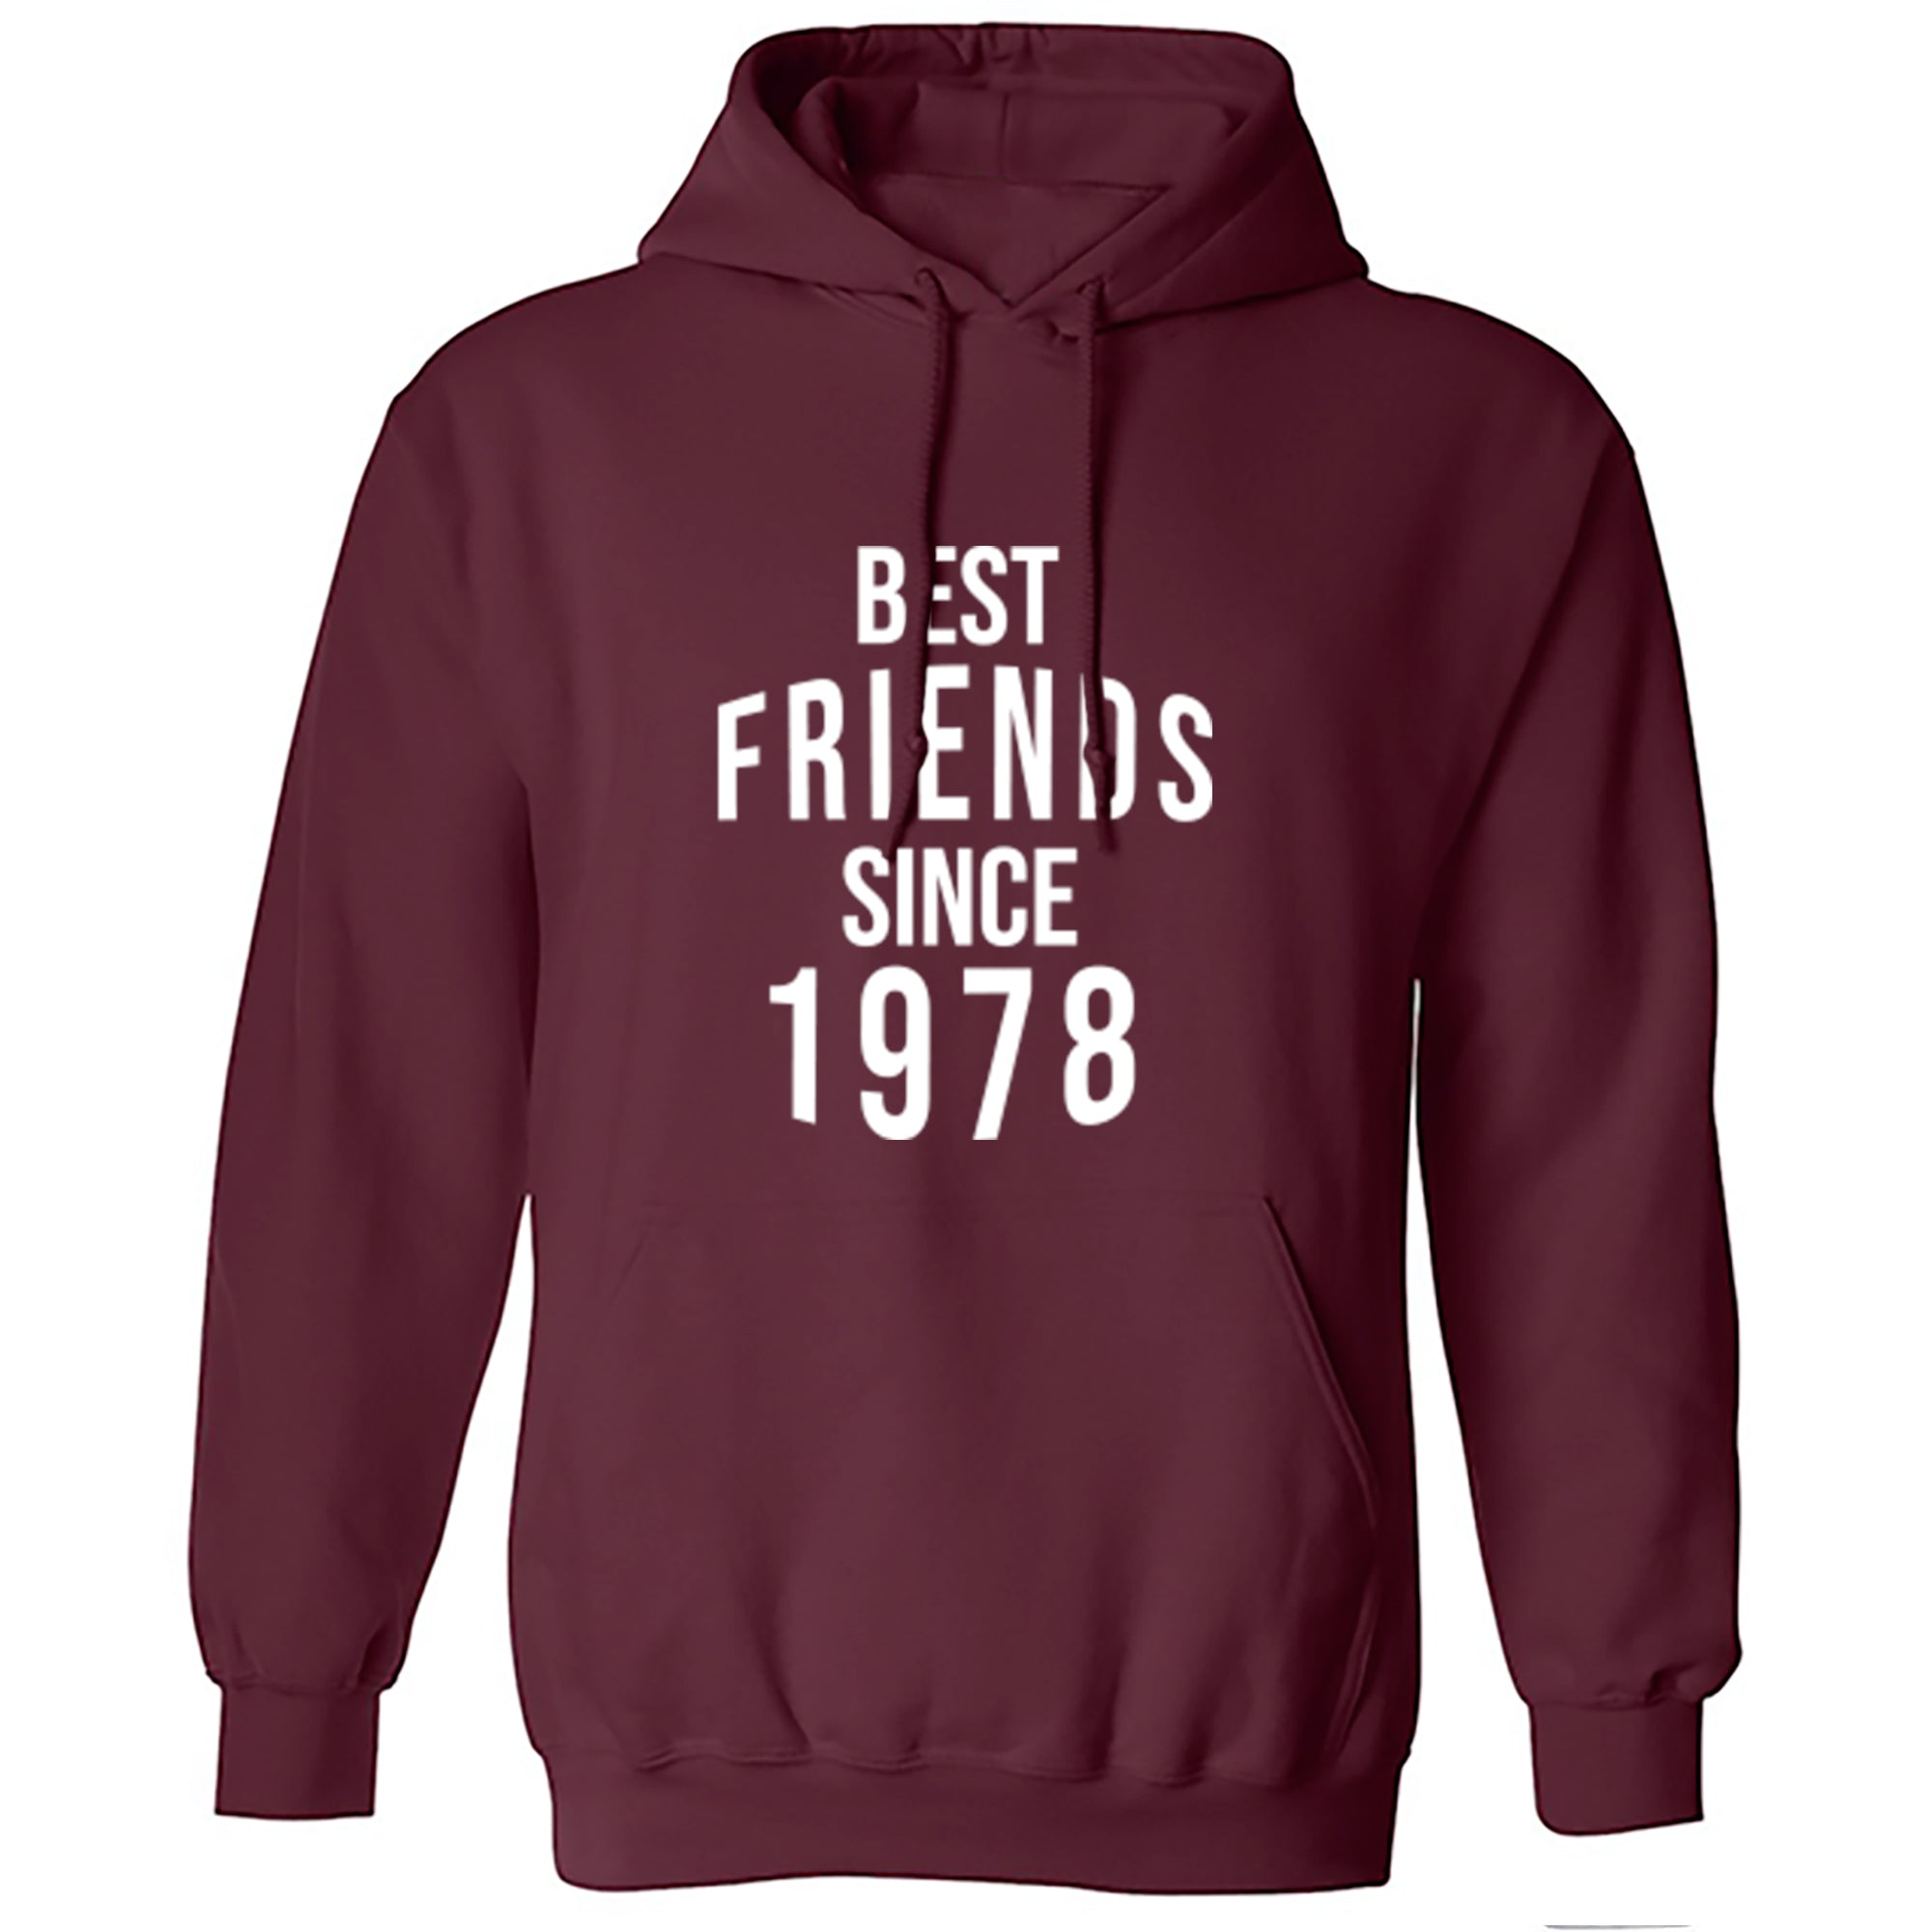 Best Friends Since 1978 Unisex Hoodie S0557 - Illustrated Identity Ltd.